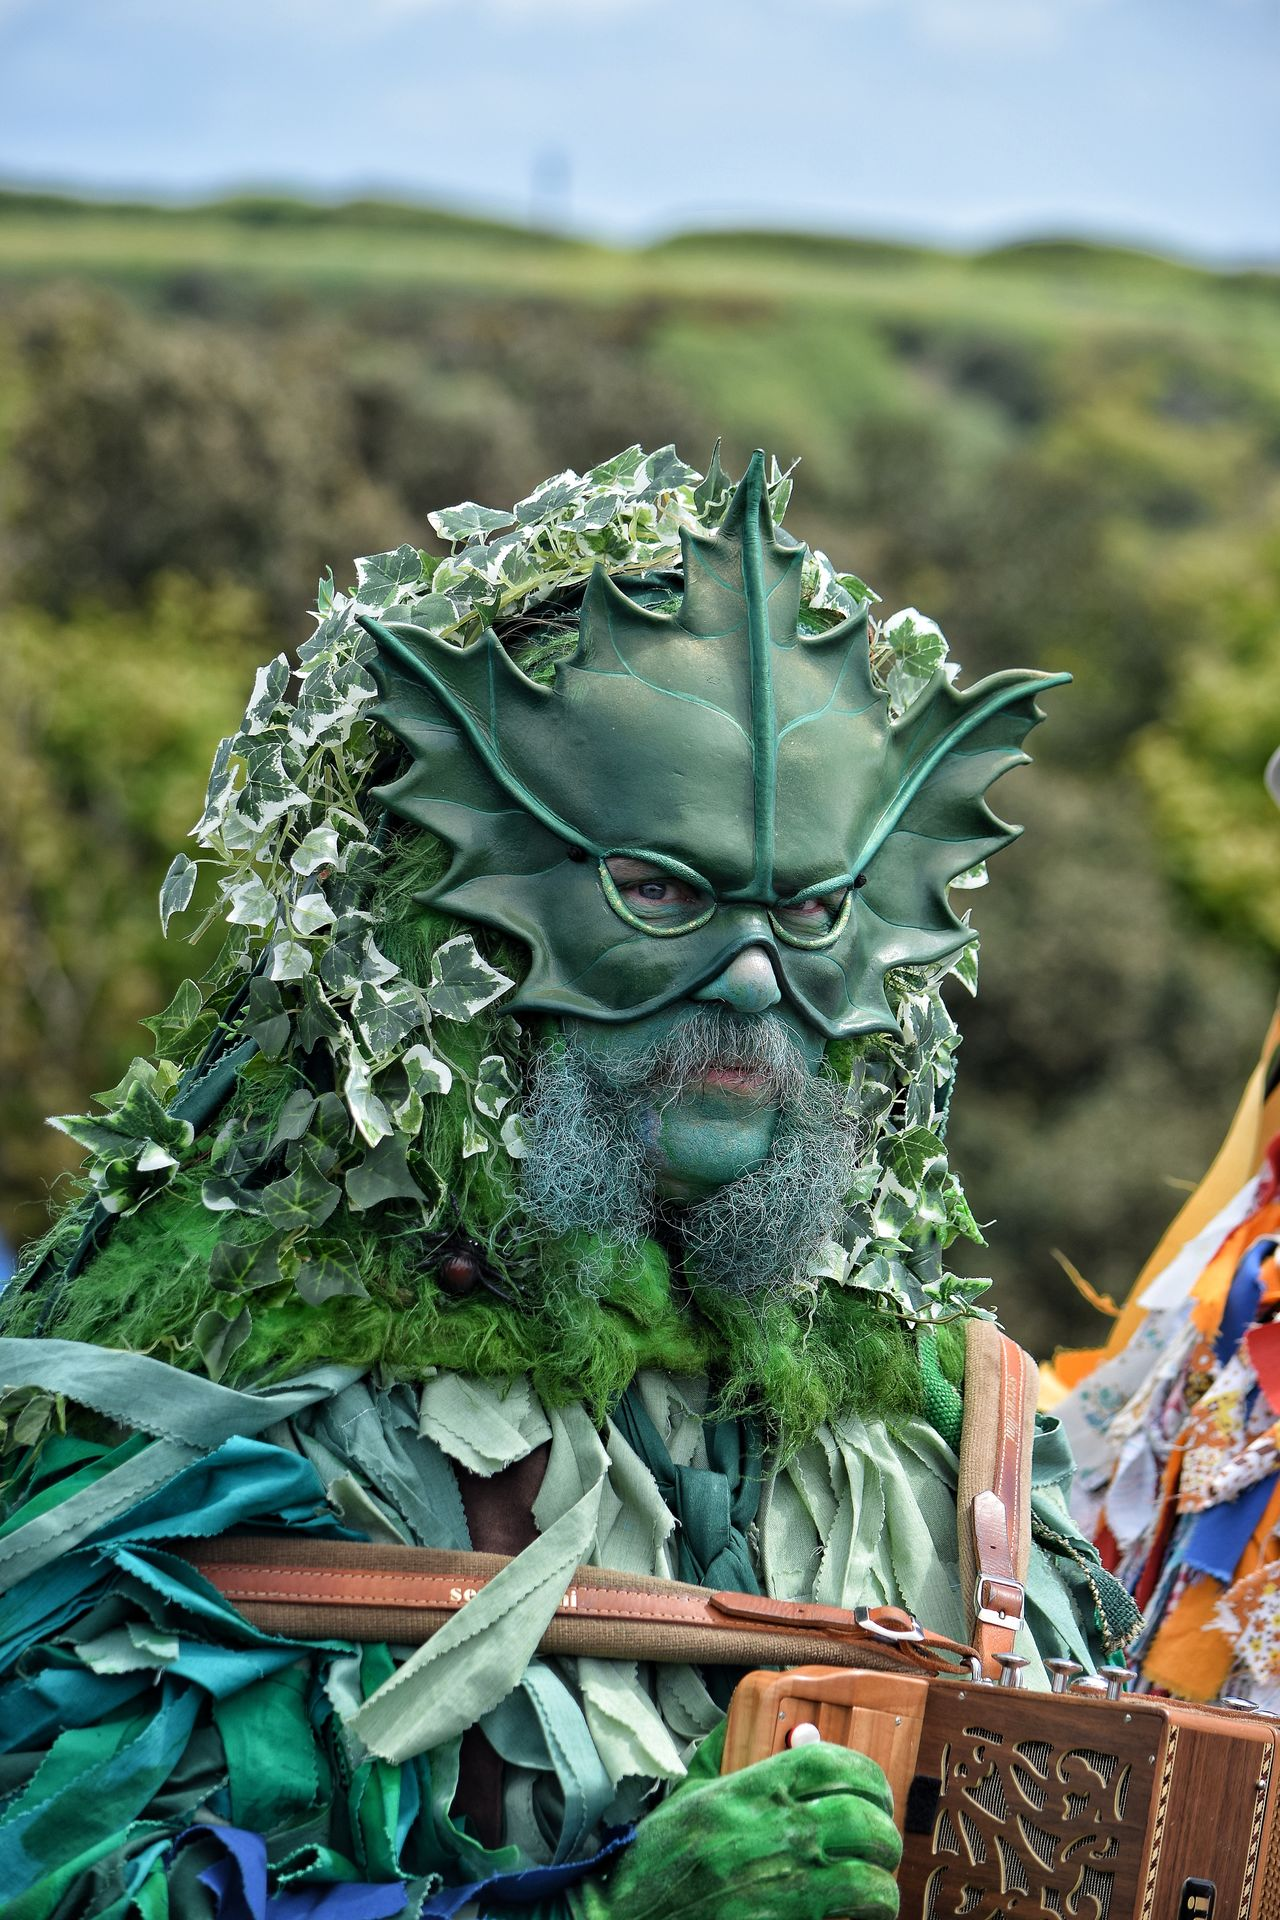 Jack In The Green Jack In The Green Festival Hastings May Day 2017 East Sussex Green Green Man Bearded Man Celebration May Festival Pagan Nature Close-up Green Face Portrait Outdoors Festival Costume May Day Face Make Up One Man Only Parade Life Beard Mask